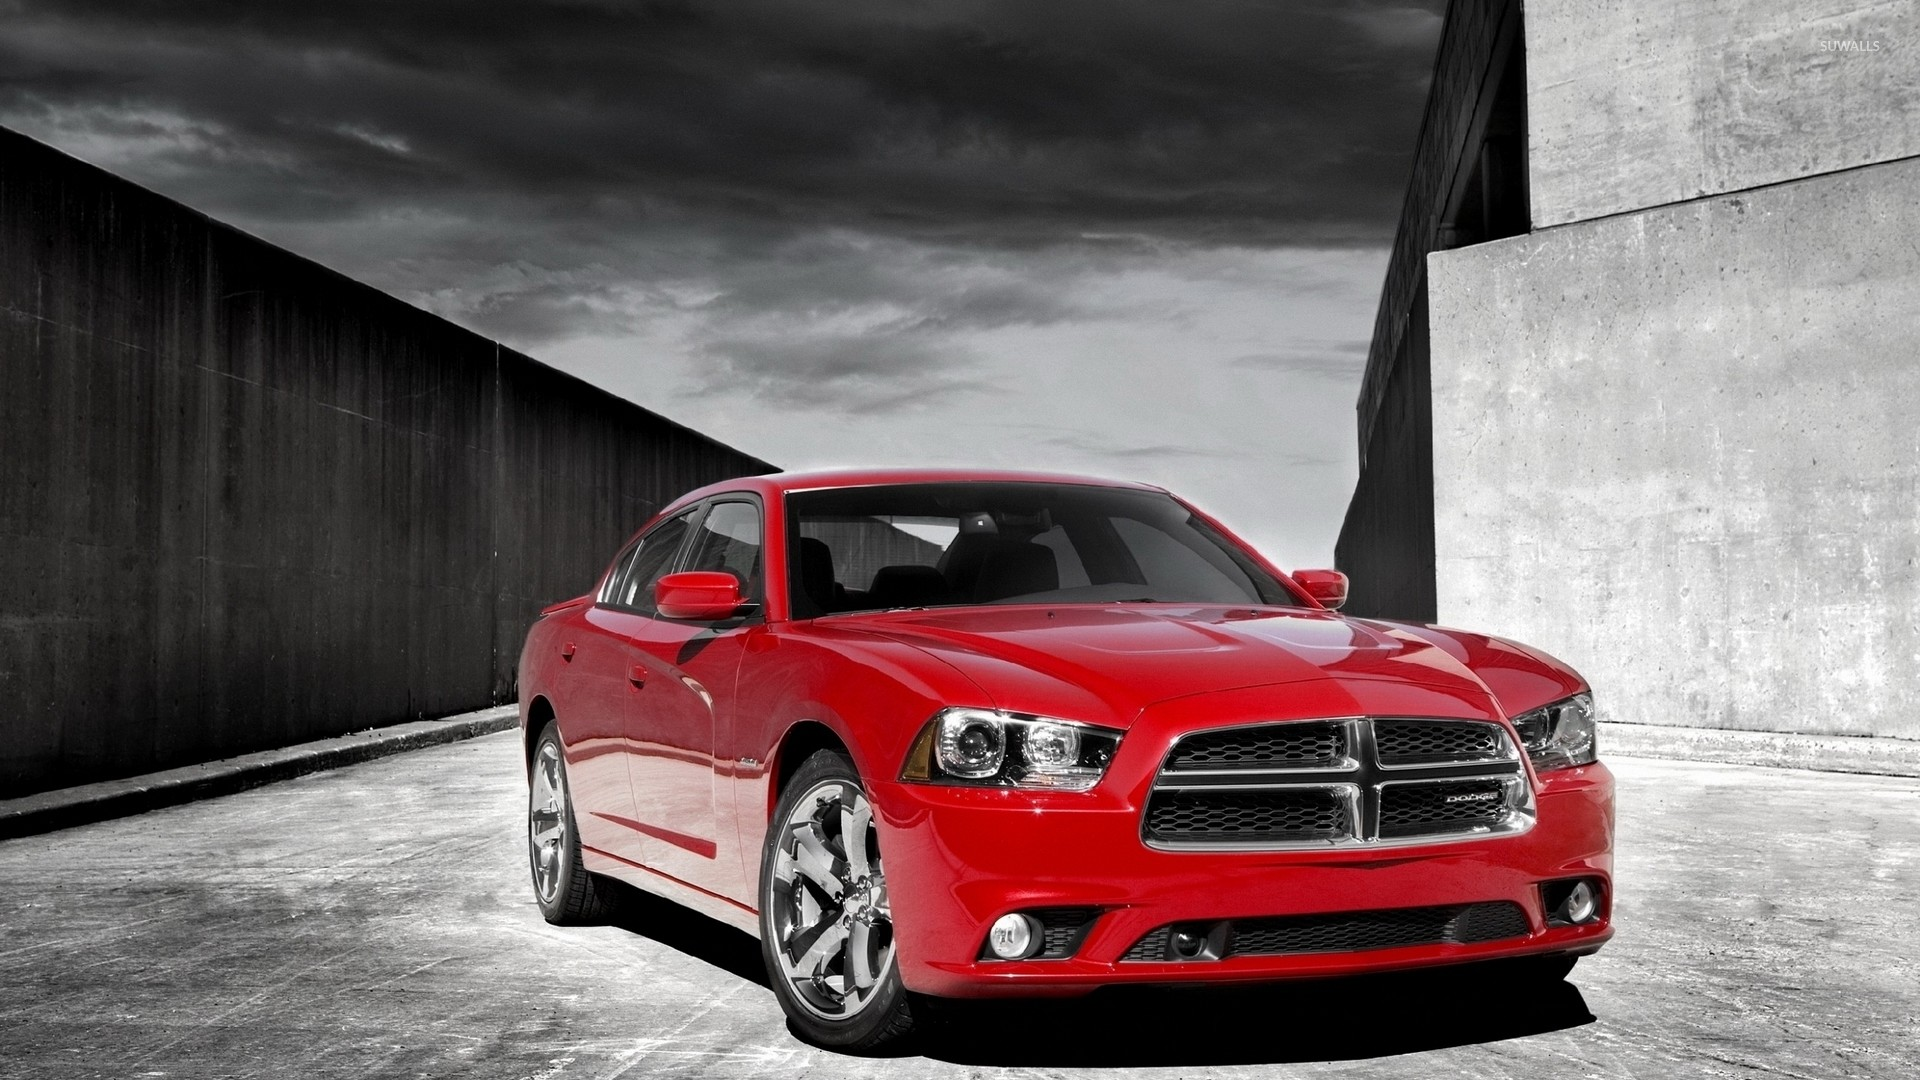 1920x1080 Front view of a 2012 Dodge Charger wallpaper  jpg